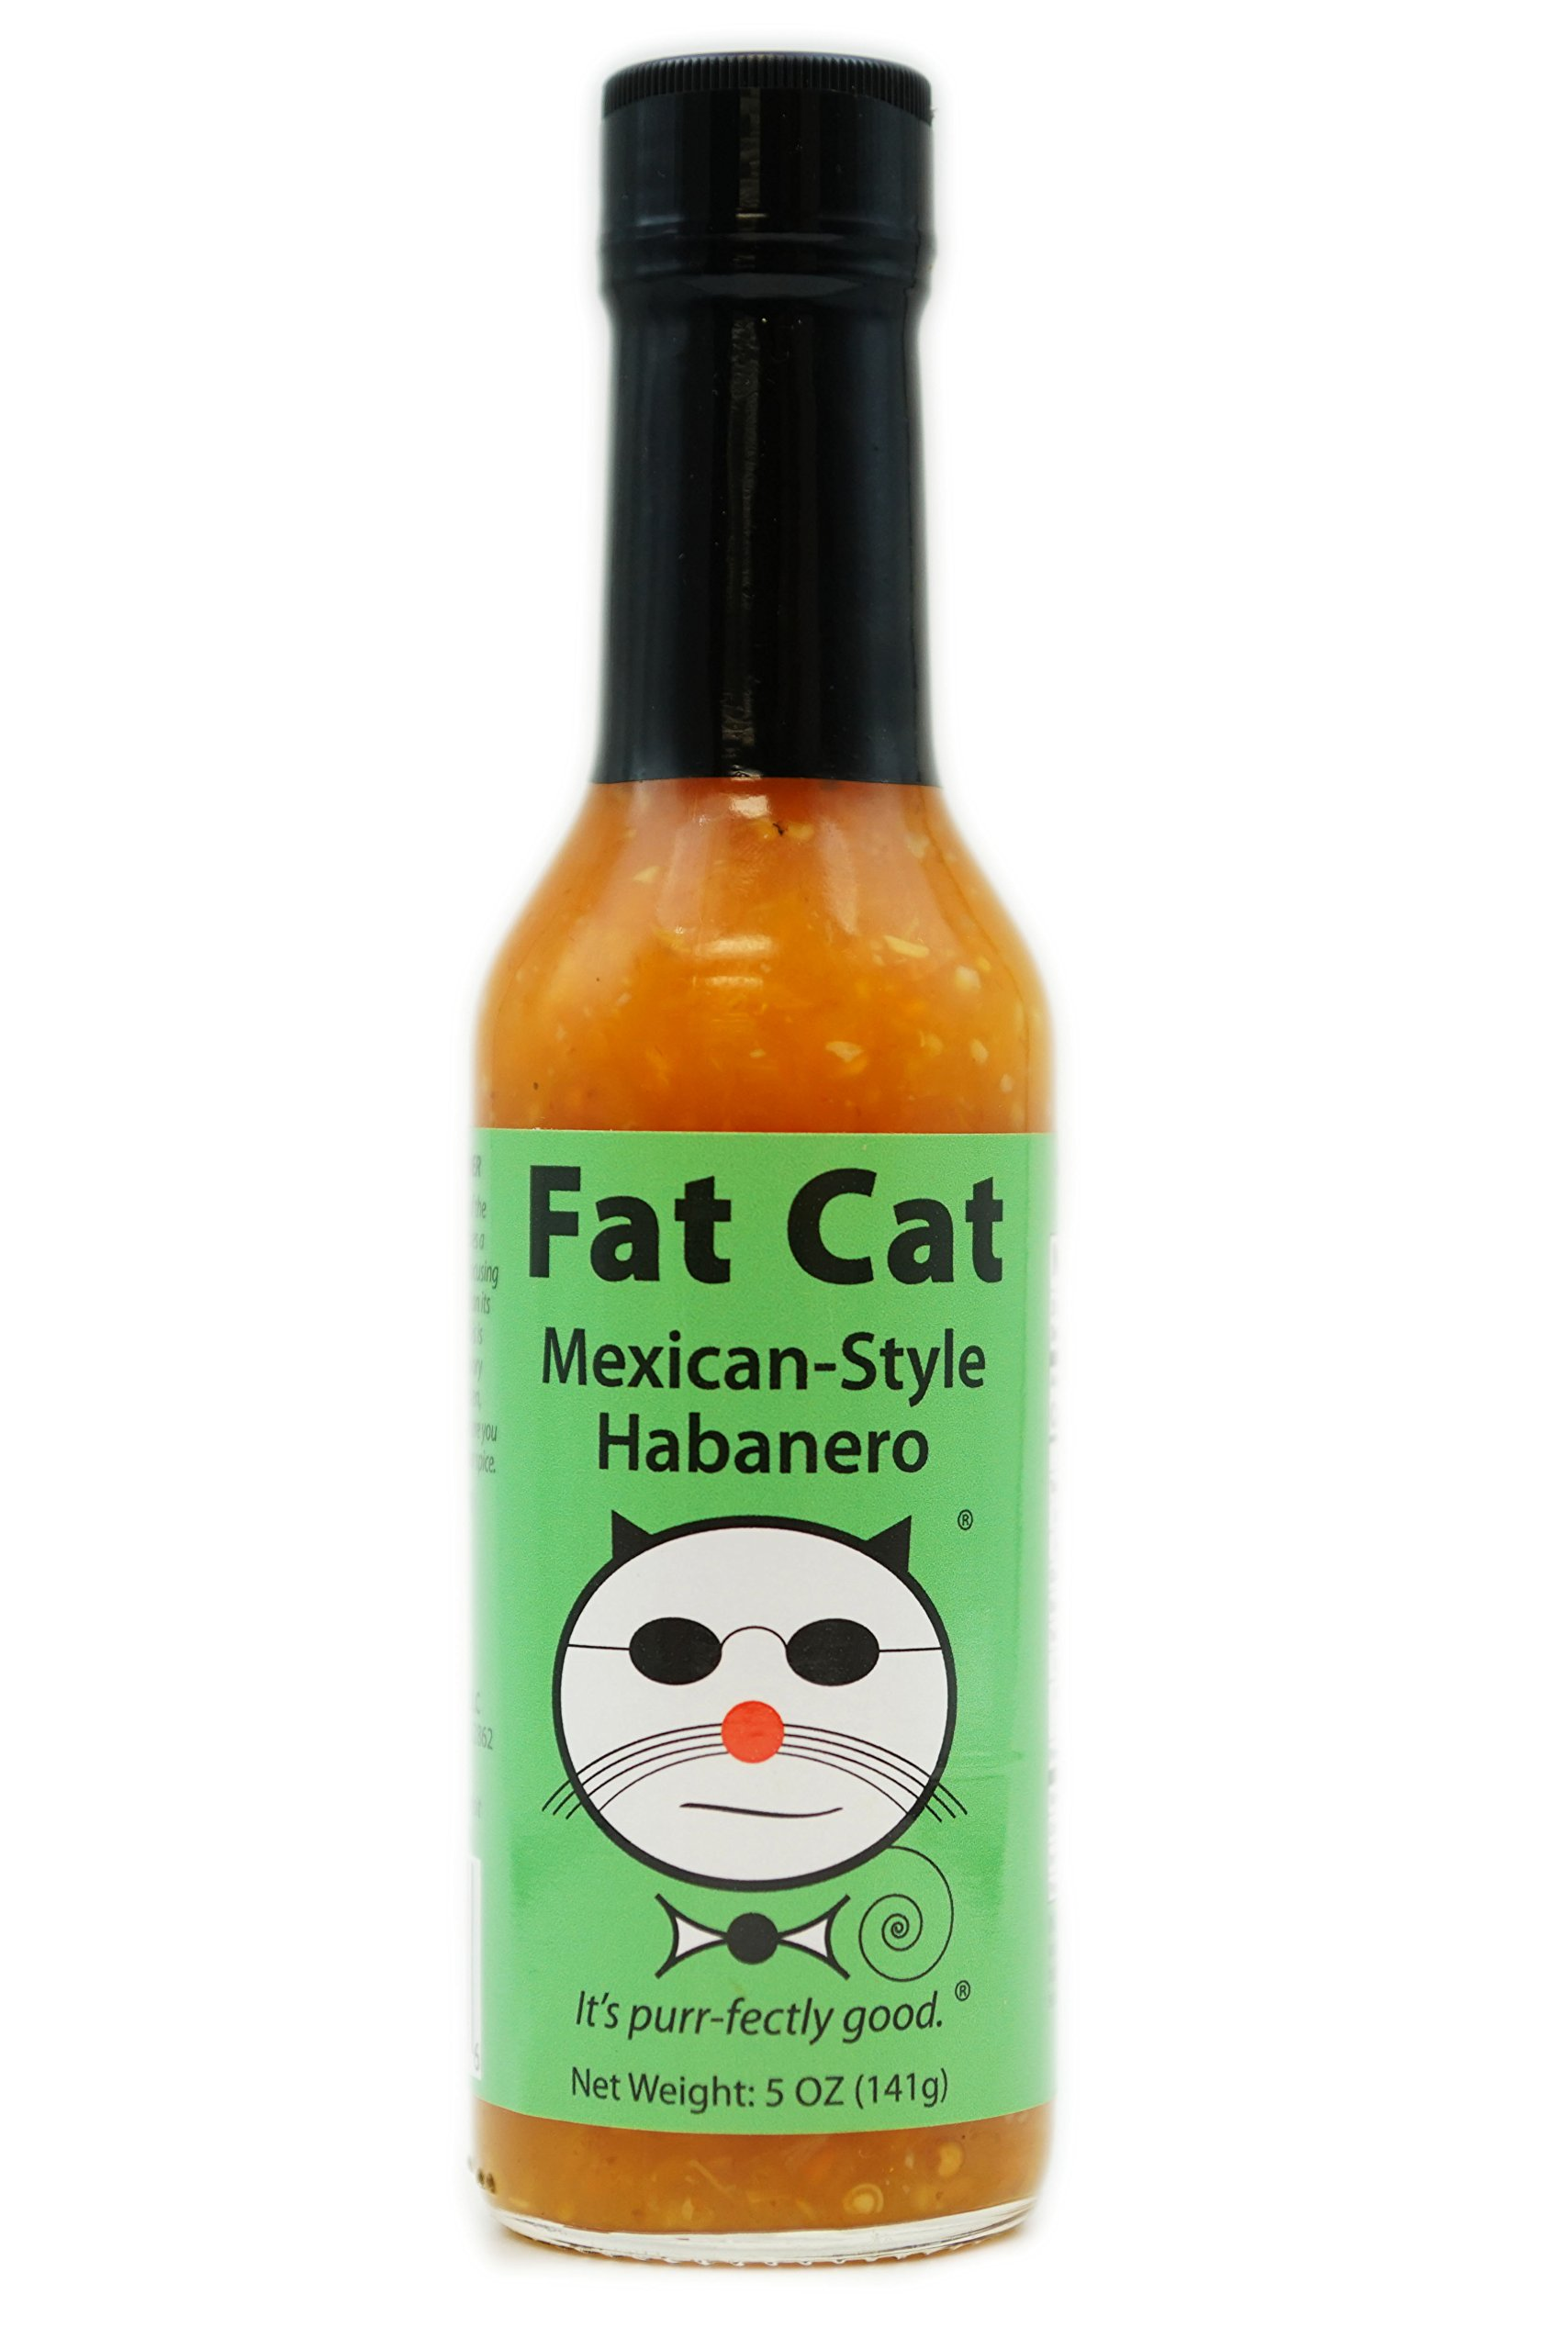 Fat Cat - Mexican-Style Habanero Hot Sauce sold by Fat Cat Gourmet Foods